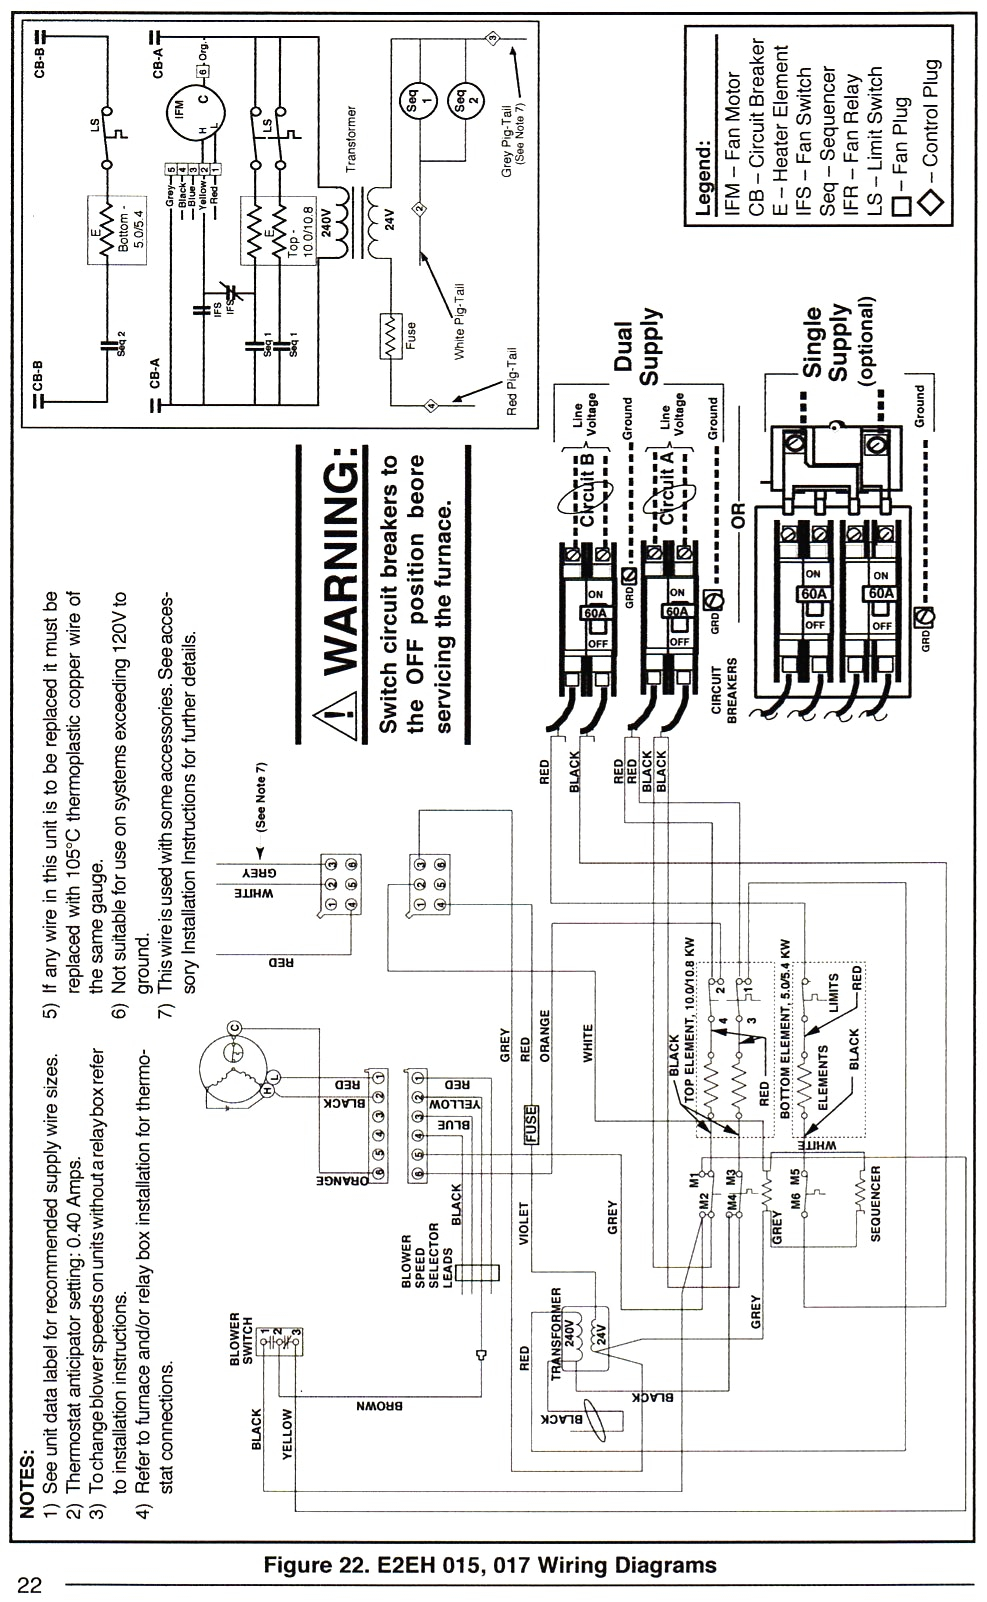 hight resolution of nordyne furnace wiring diagram wiring diagram toolbox nordyne wiring diagram 7102250 nordyne wiring diagram